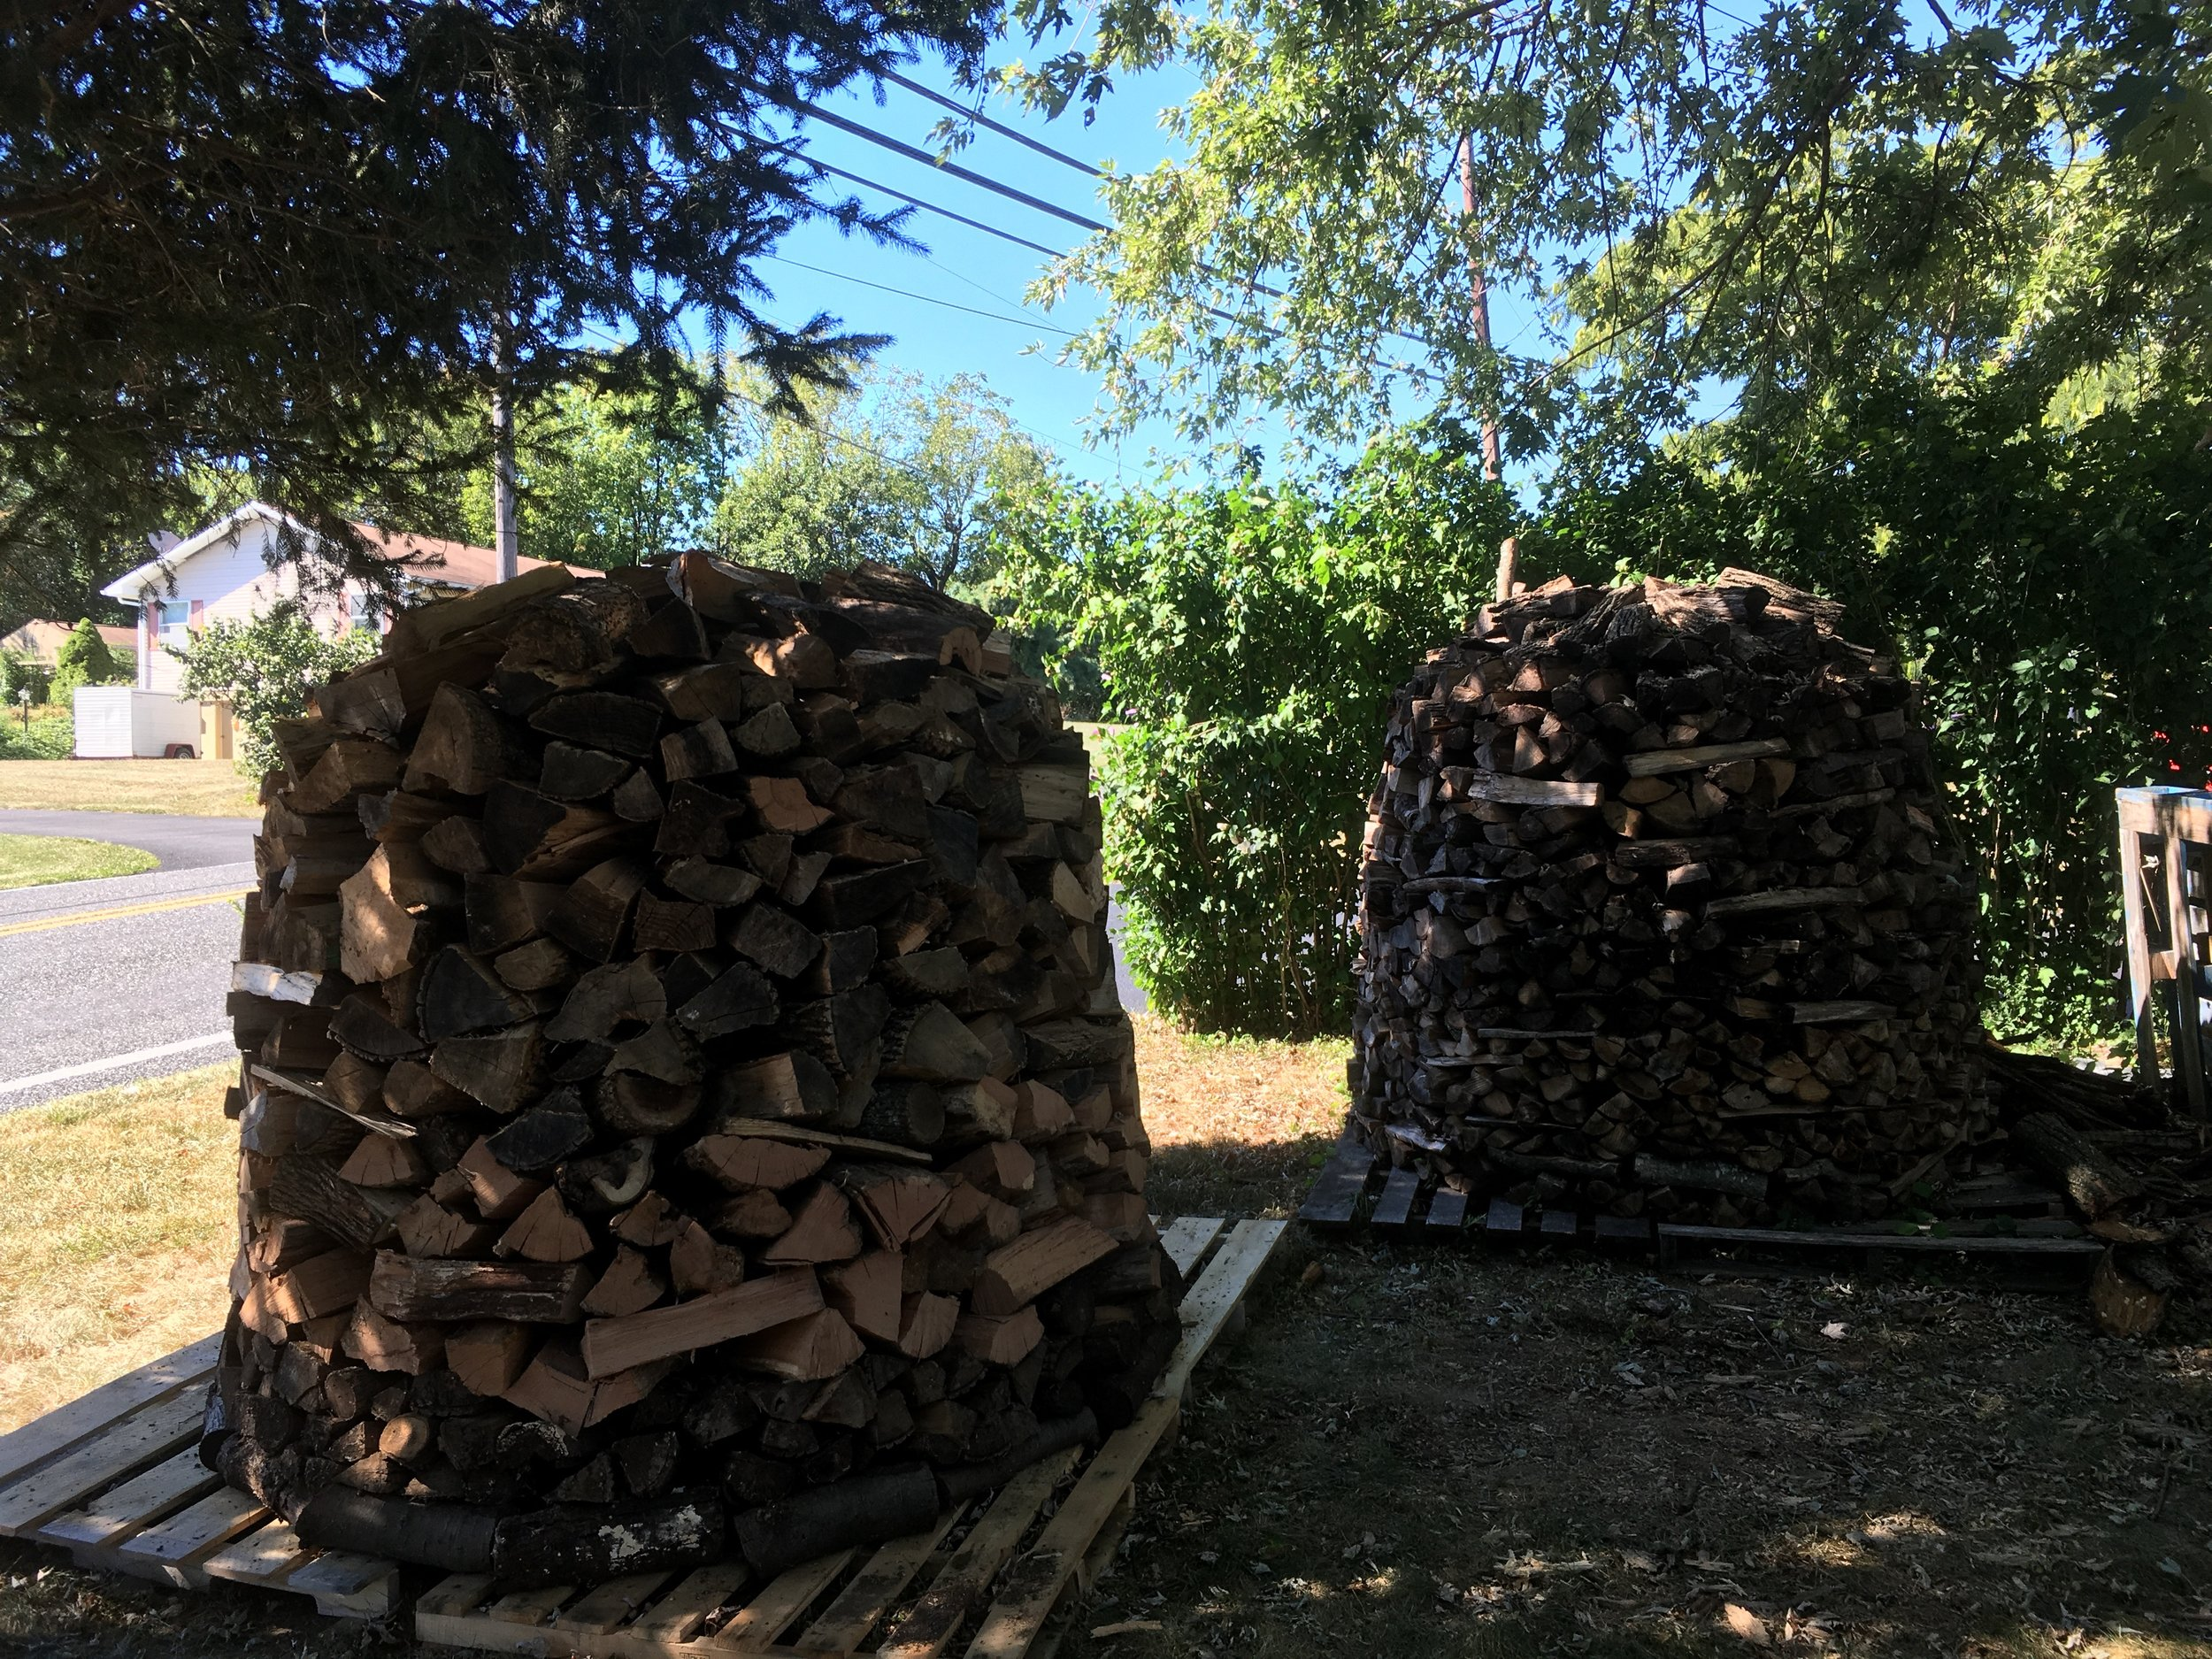 Two Holzhausen (German for wood house) I built recently. Combined they hold about 2.5 cords of wood. I've got one more I'm working on with just under 4 cords of wood saved up total. Should get me through this winter but I'd like to get 1 or 2 years ahead. I really like the concept behind these German wood piles. Not only are they much more economical and efficient than regular wood piles they look beautiful too.